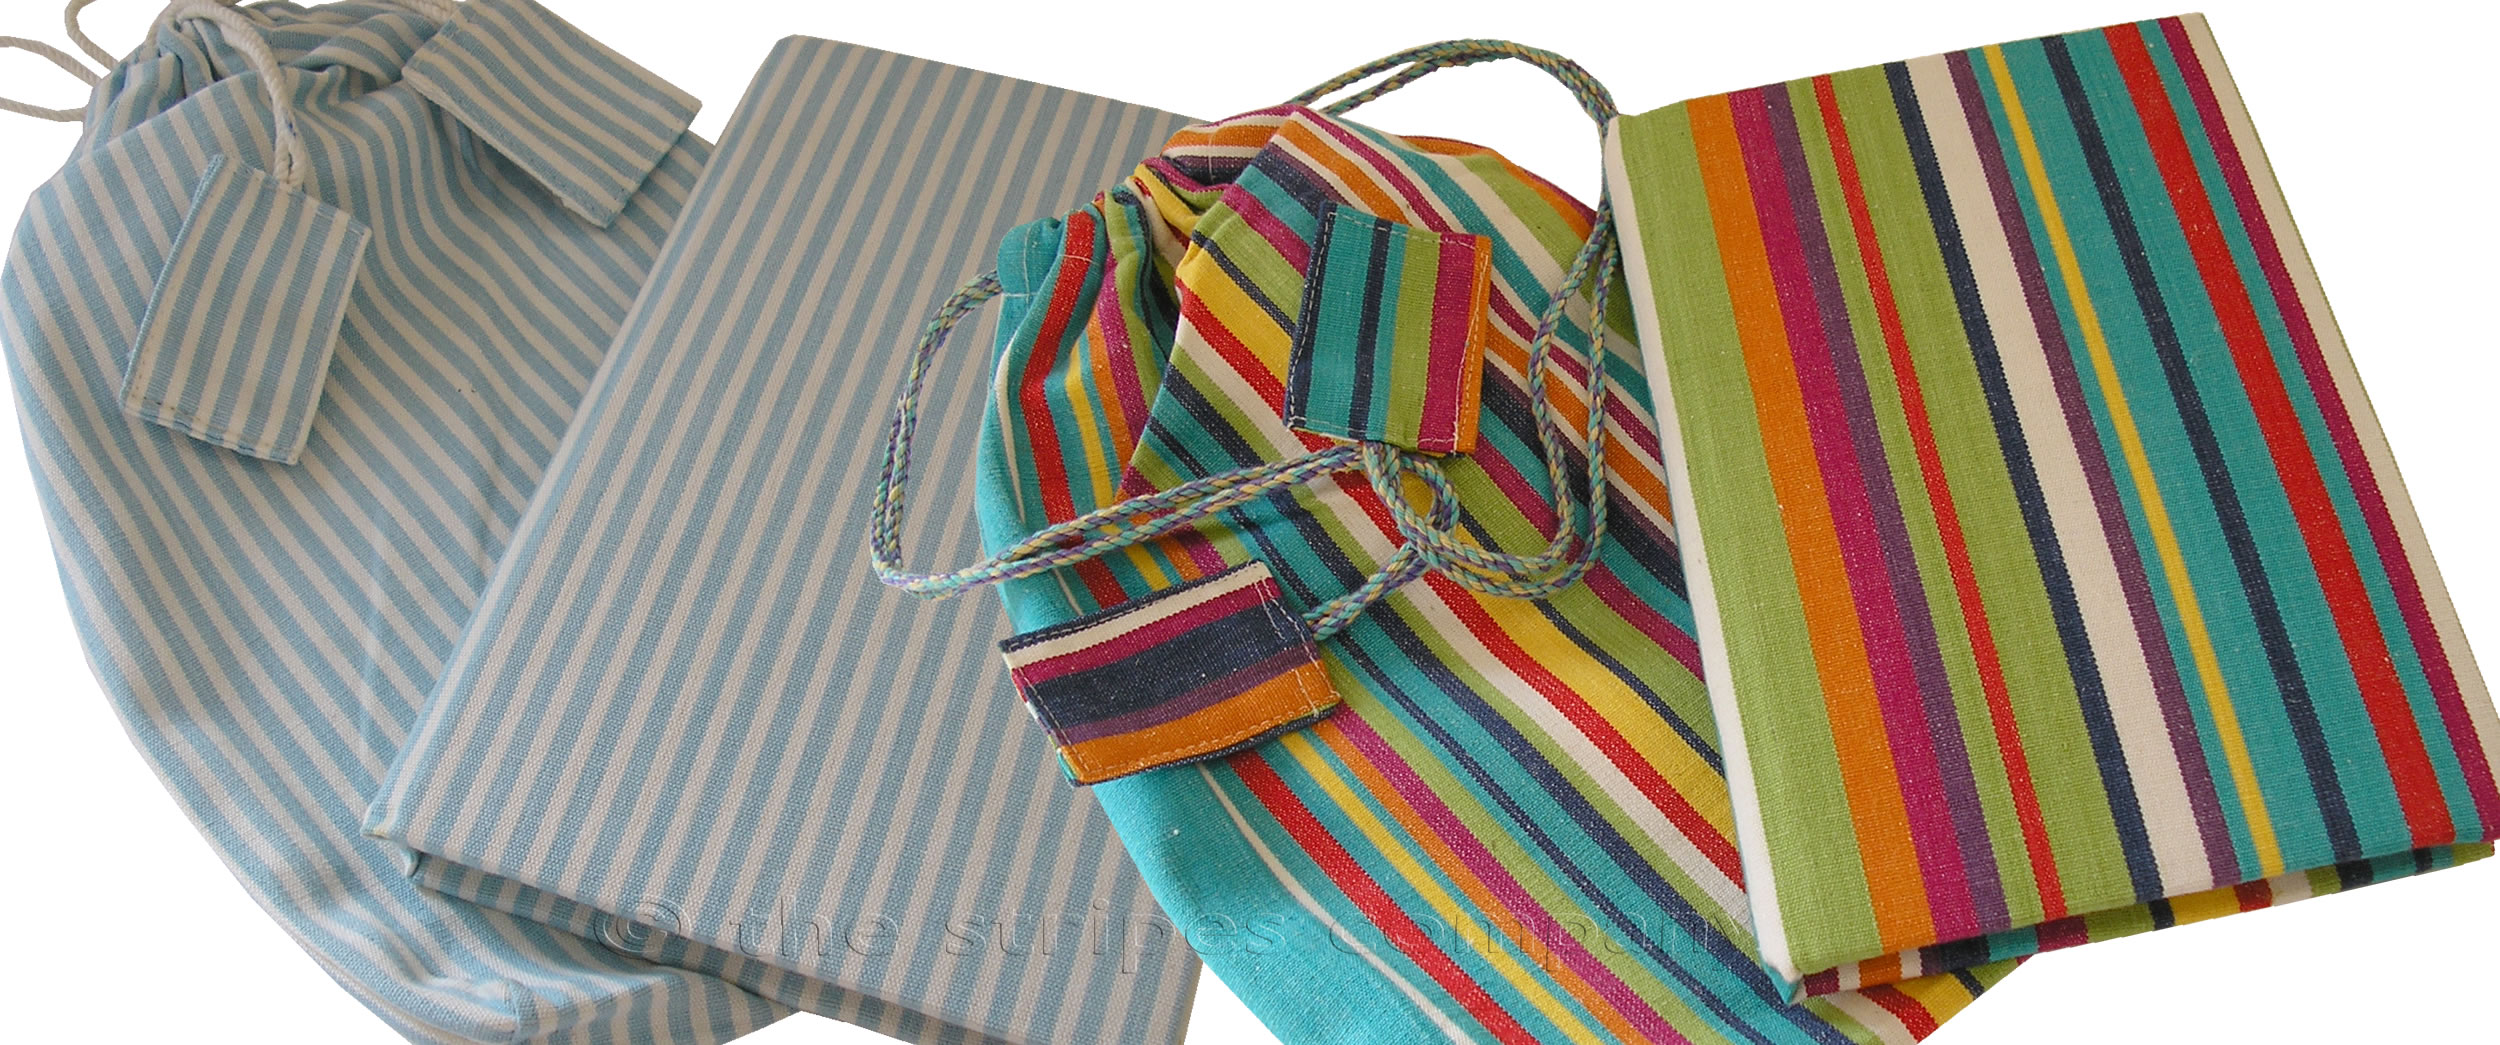 Fabric Covered Notebooks | Striped Notebooks with Matching Bag | Fabric Covered Note Book in Striped Bag